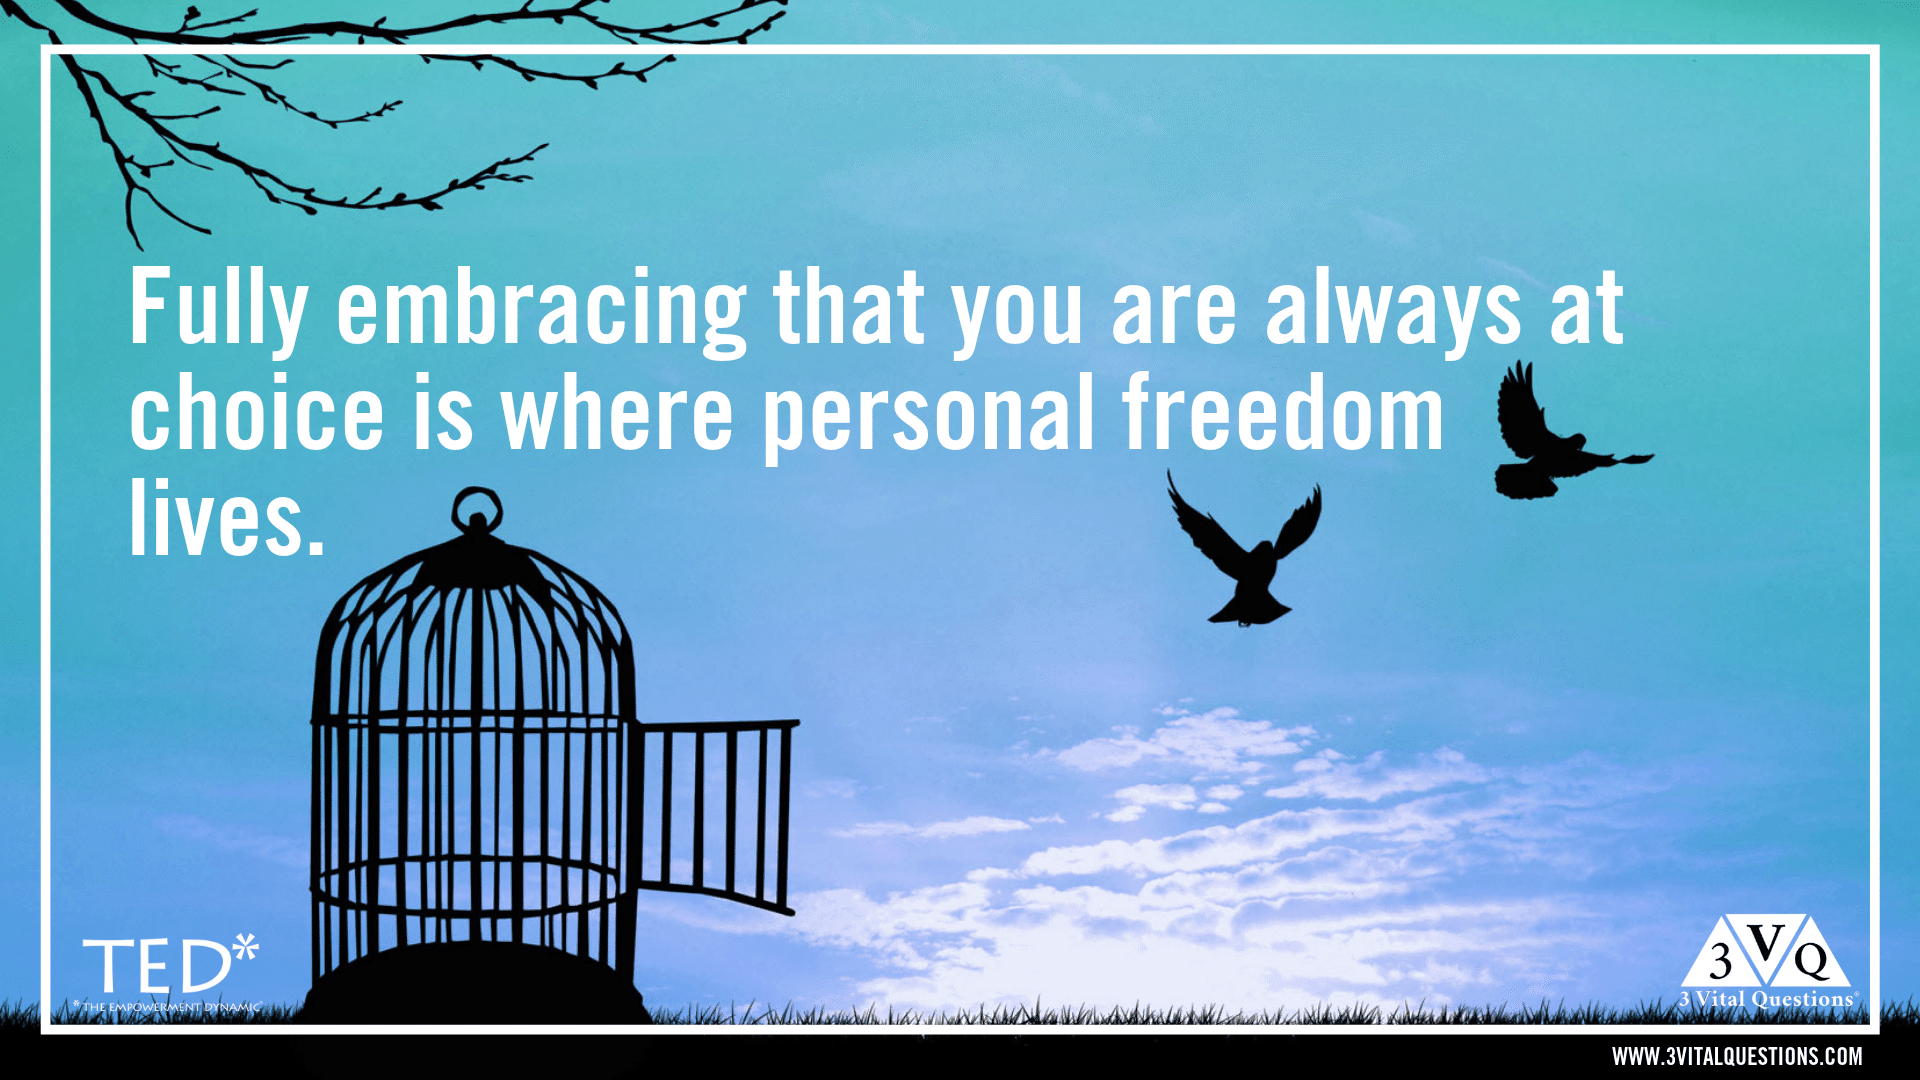 Fully embracing that you are always at choice is where personal freedom lives.